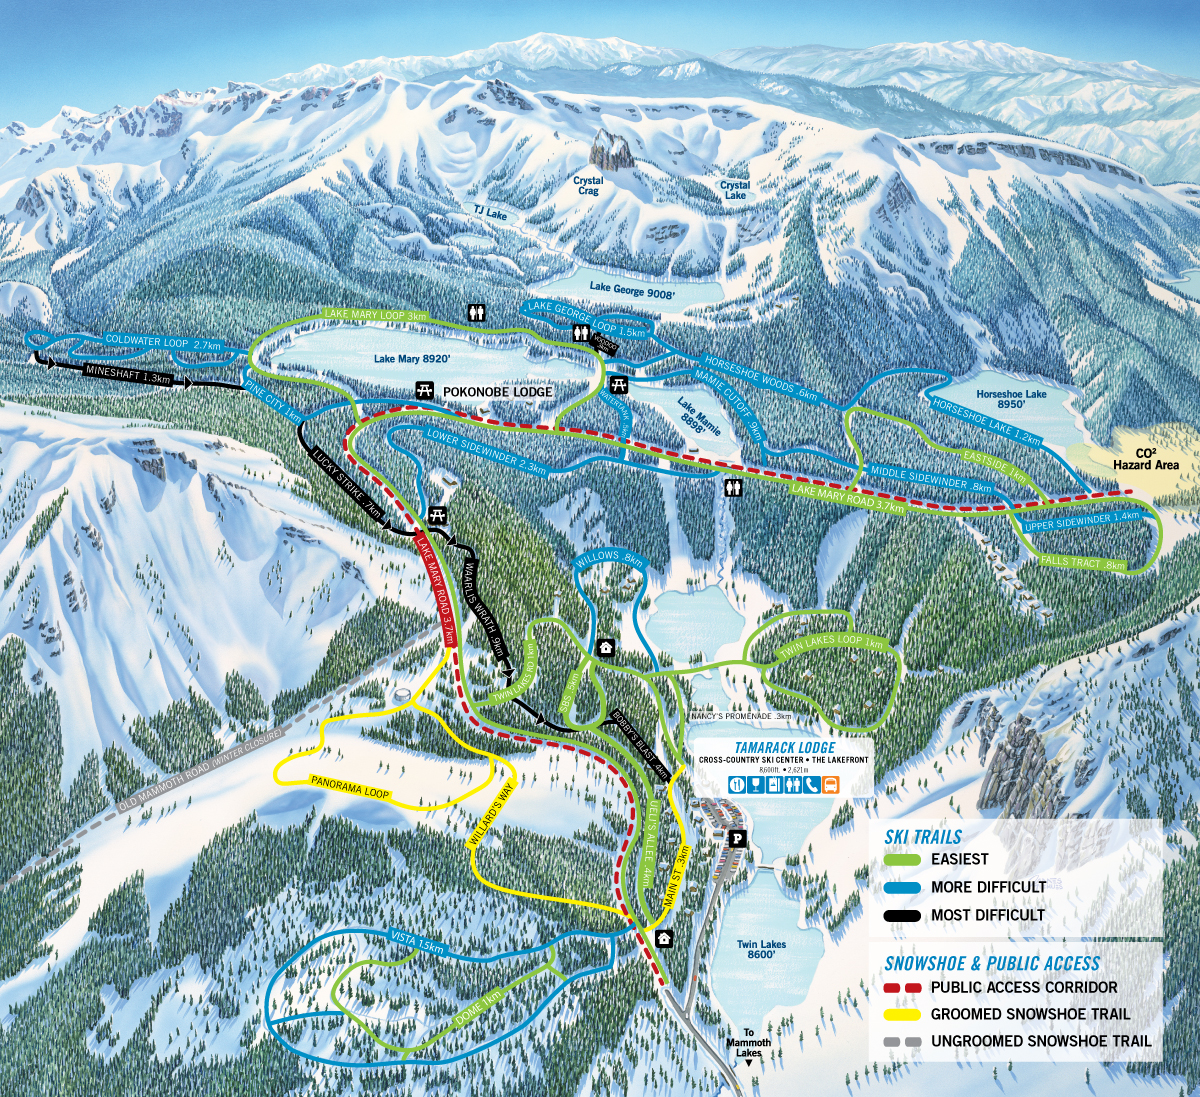 Tamarack Ski Center Trail Map & Conditions | Learn More on chief mountain trail map, bishop trail map, jericho mountain trail map, parker mountain trail map, map of vail mountain trail map, alpine meadows ski resort trail map, snowbasin mountain trail map, mammoth trail map pdf, salisbury ct trail map, catalina mountain trail map, attitash bear peak trail map, laurel mountain trail map, mendocino trail map, ski mountain map, mammoth mtn trail map, morgan creek trail map, powder mountain trail map, city park bike trails map, snowbird mountain trail map, big mountain trail map,